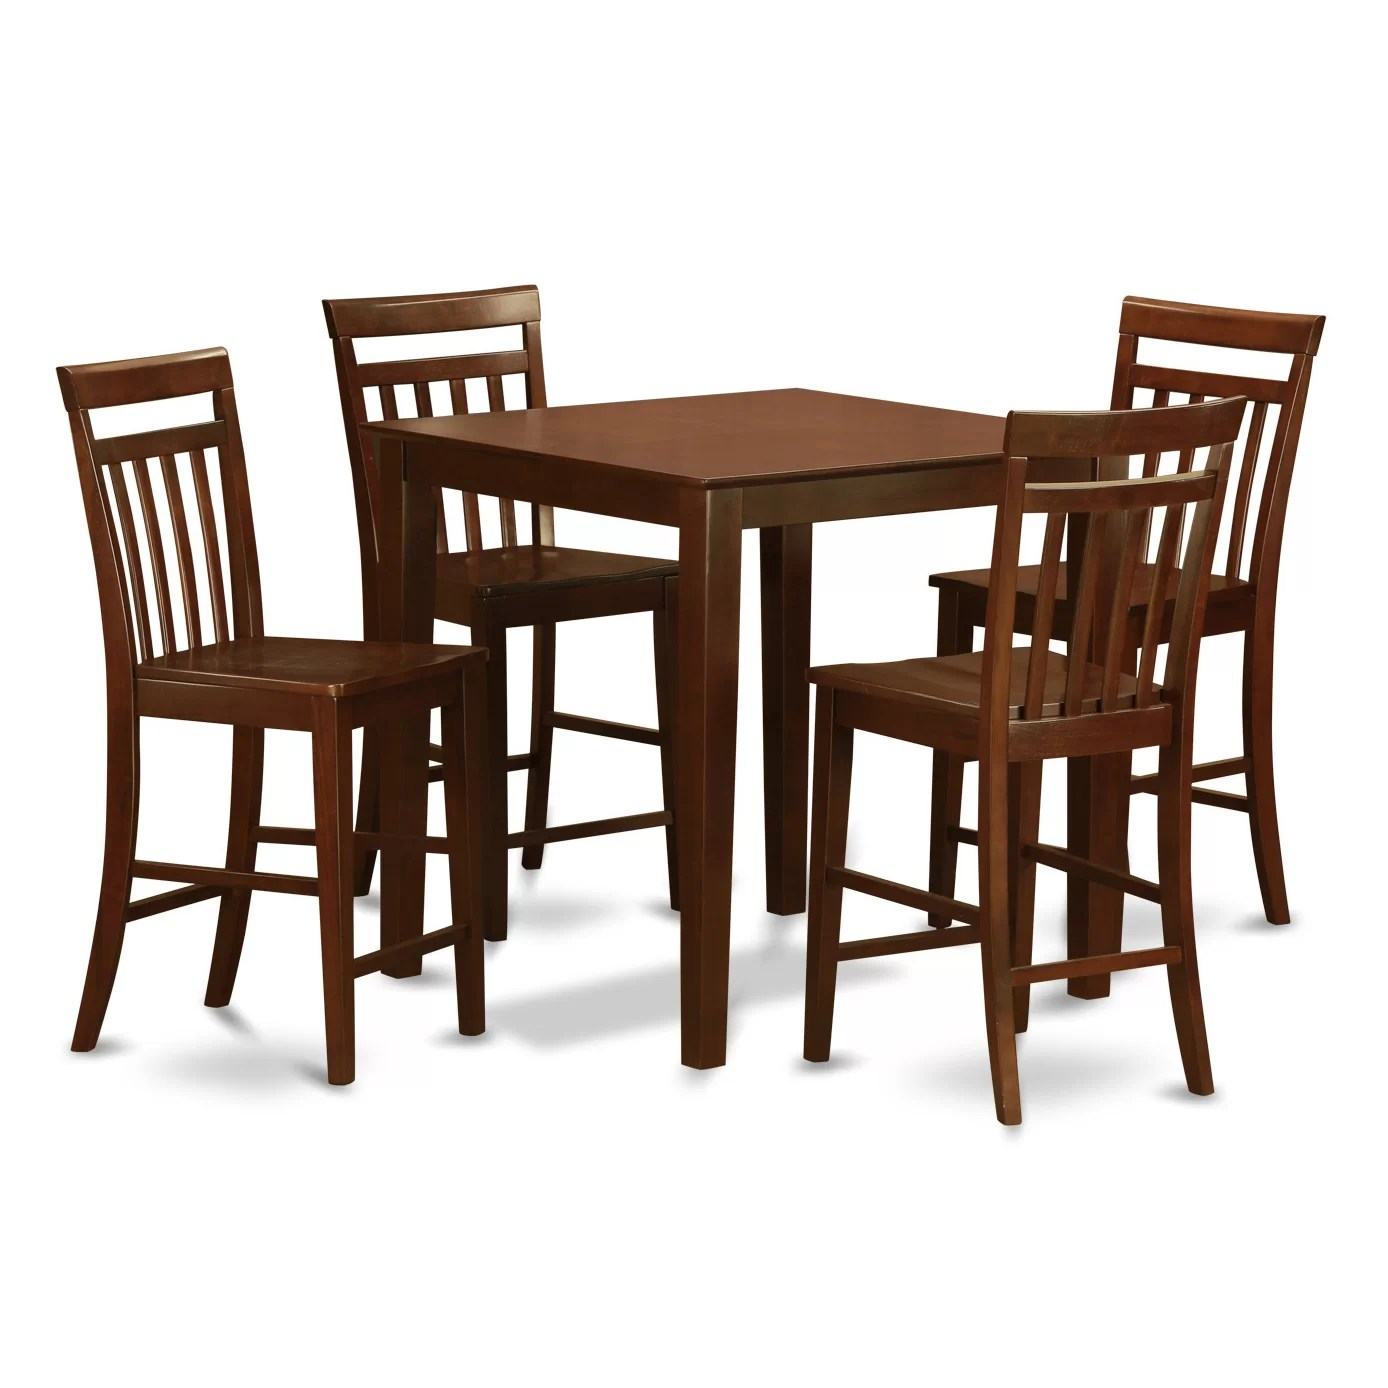 bar height table and chairs set slipcovers for childrens east west vernon 5 piece counter pub